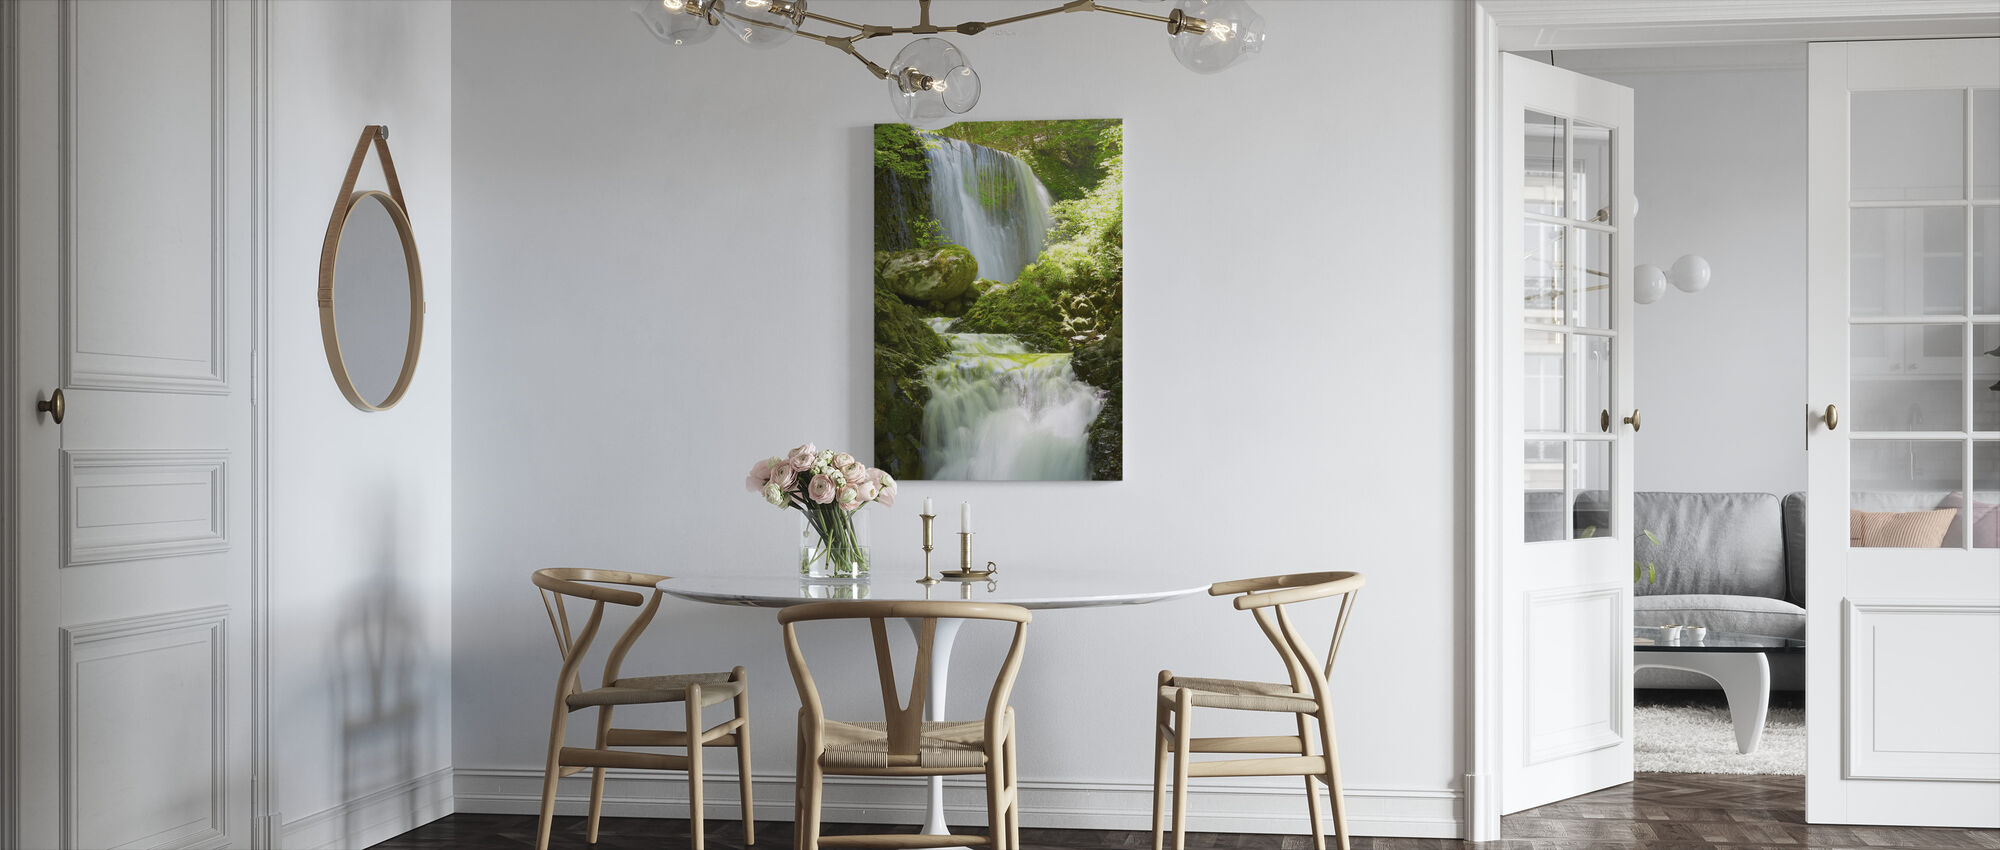 Koromonotaki Falls - Canvas print - Kitchen